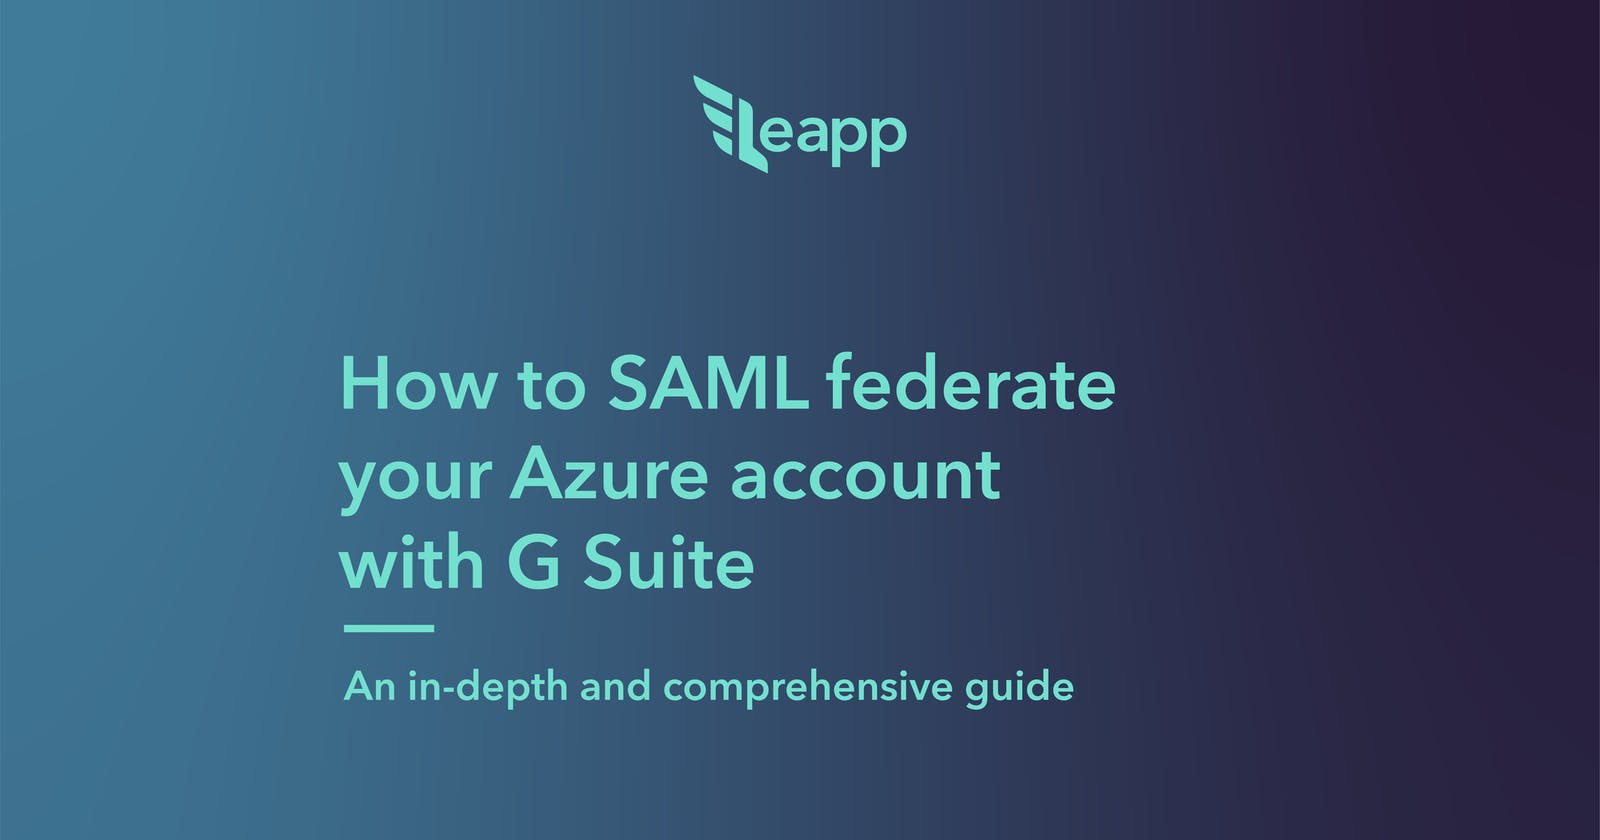 How to SAML federate your Azure account with G Suite